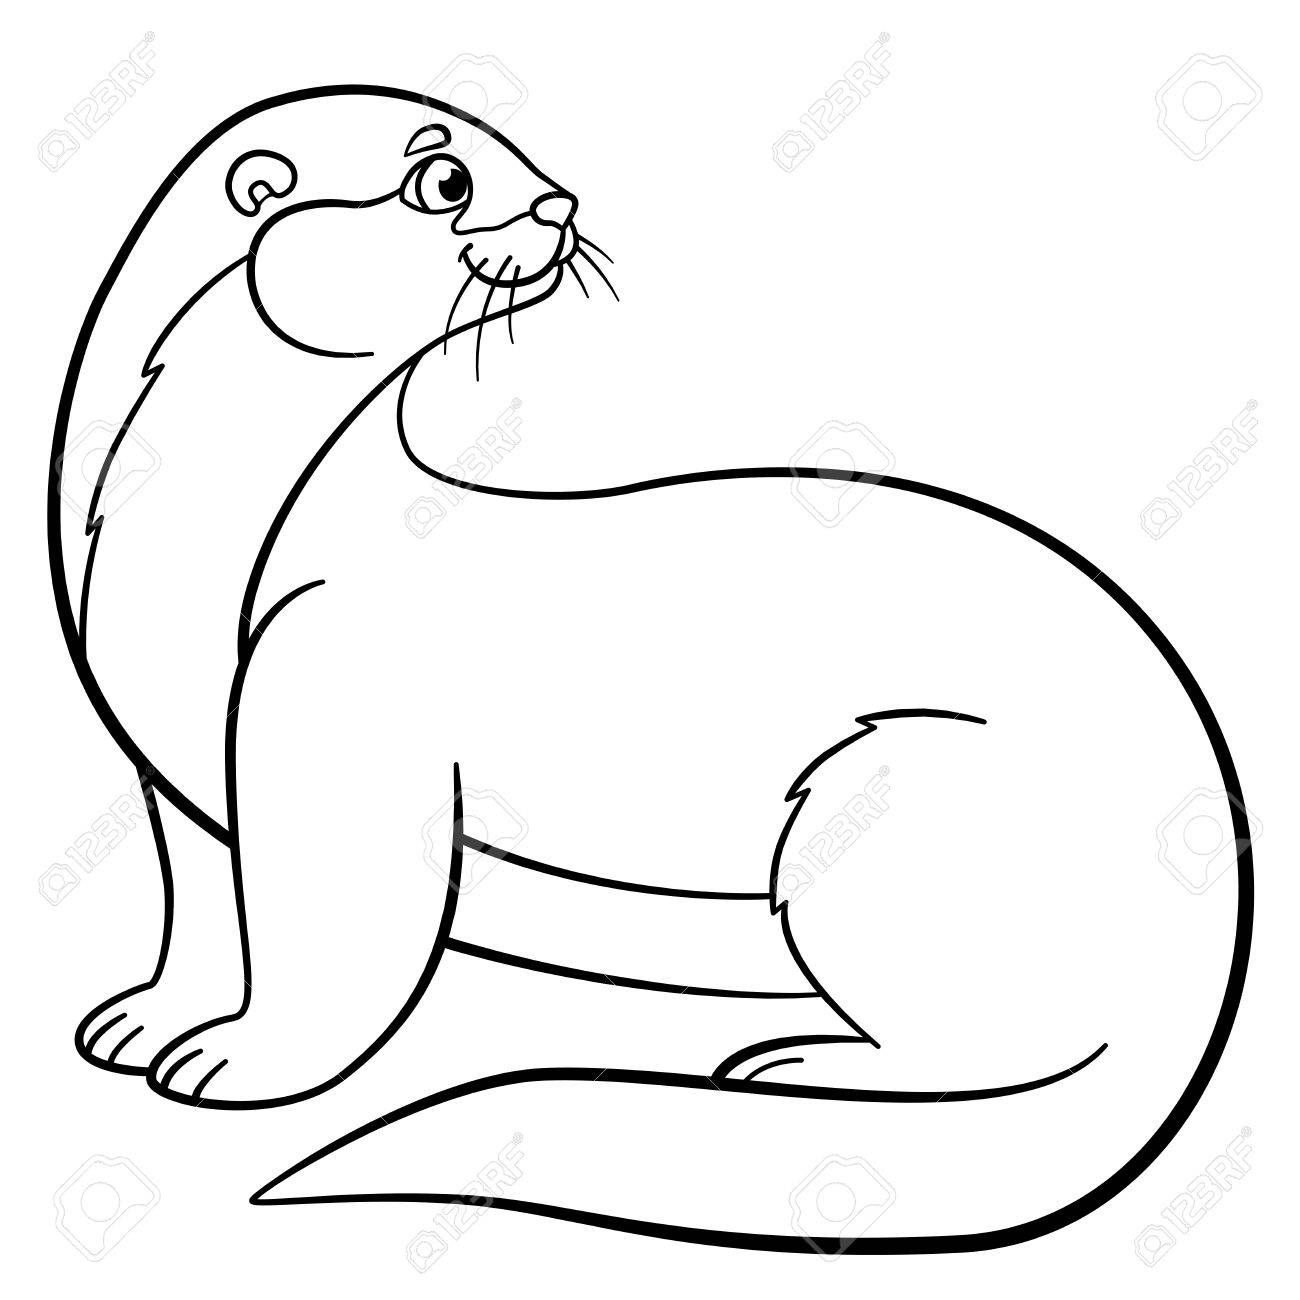 Northern Sea Otter coloring page   Free Printable Coloring Pages   1300x1300